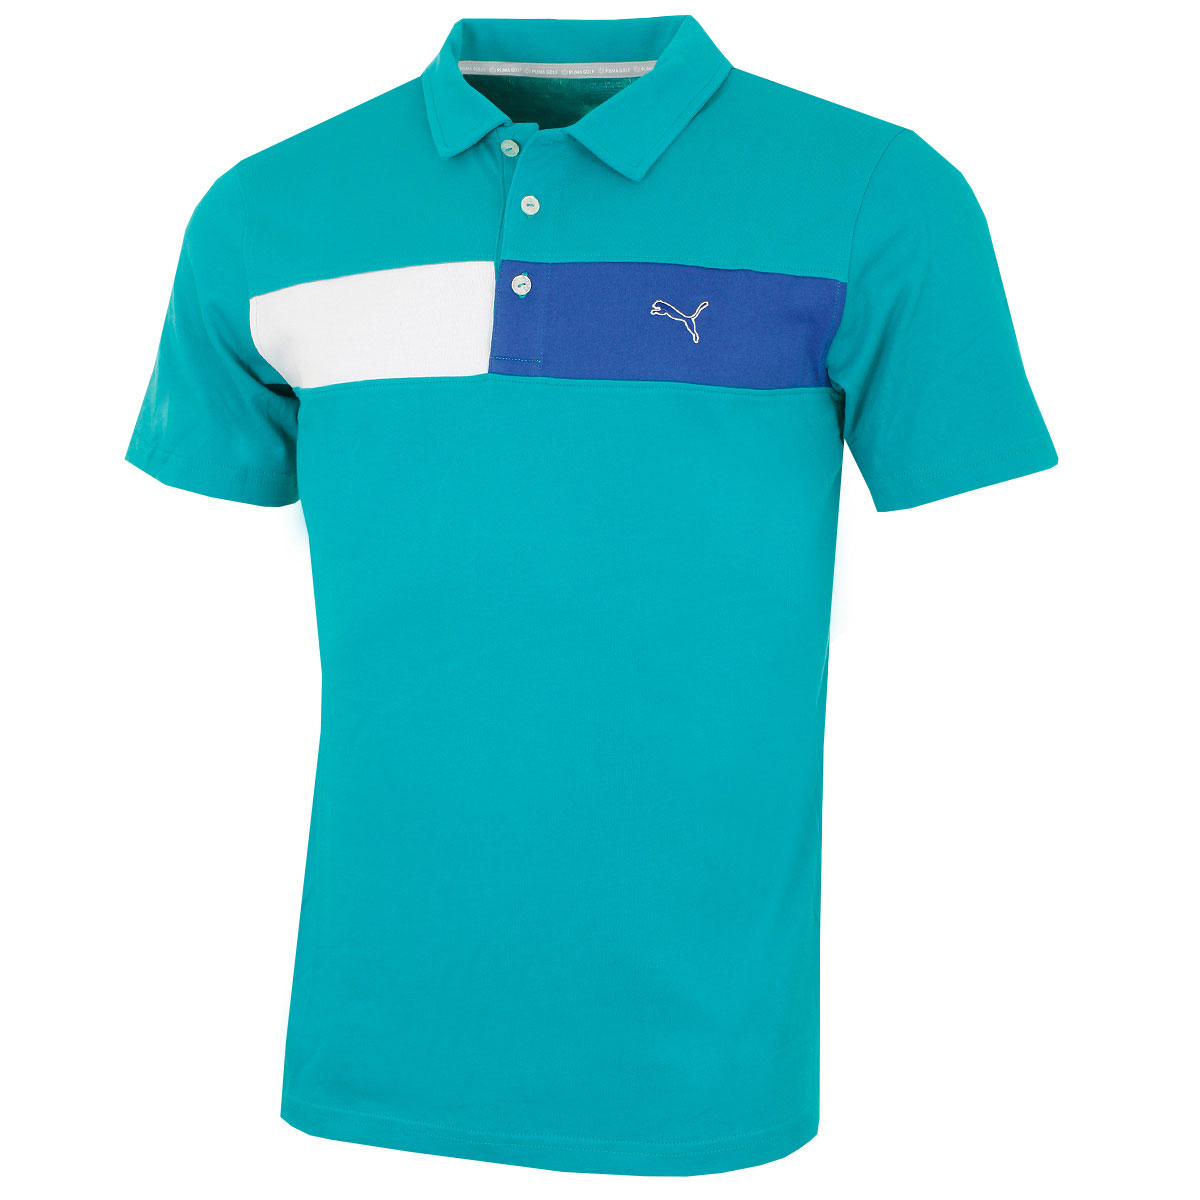 Puma golf 2016 mens performance cool touch drycell polo for Men s performance polo shirts